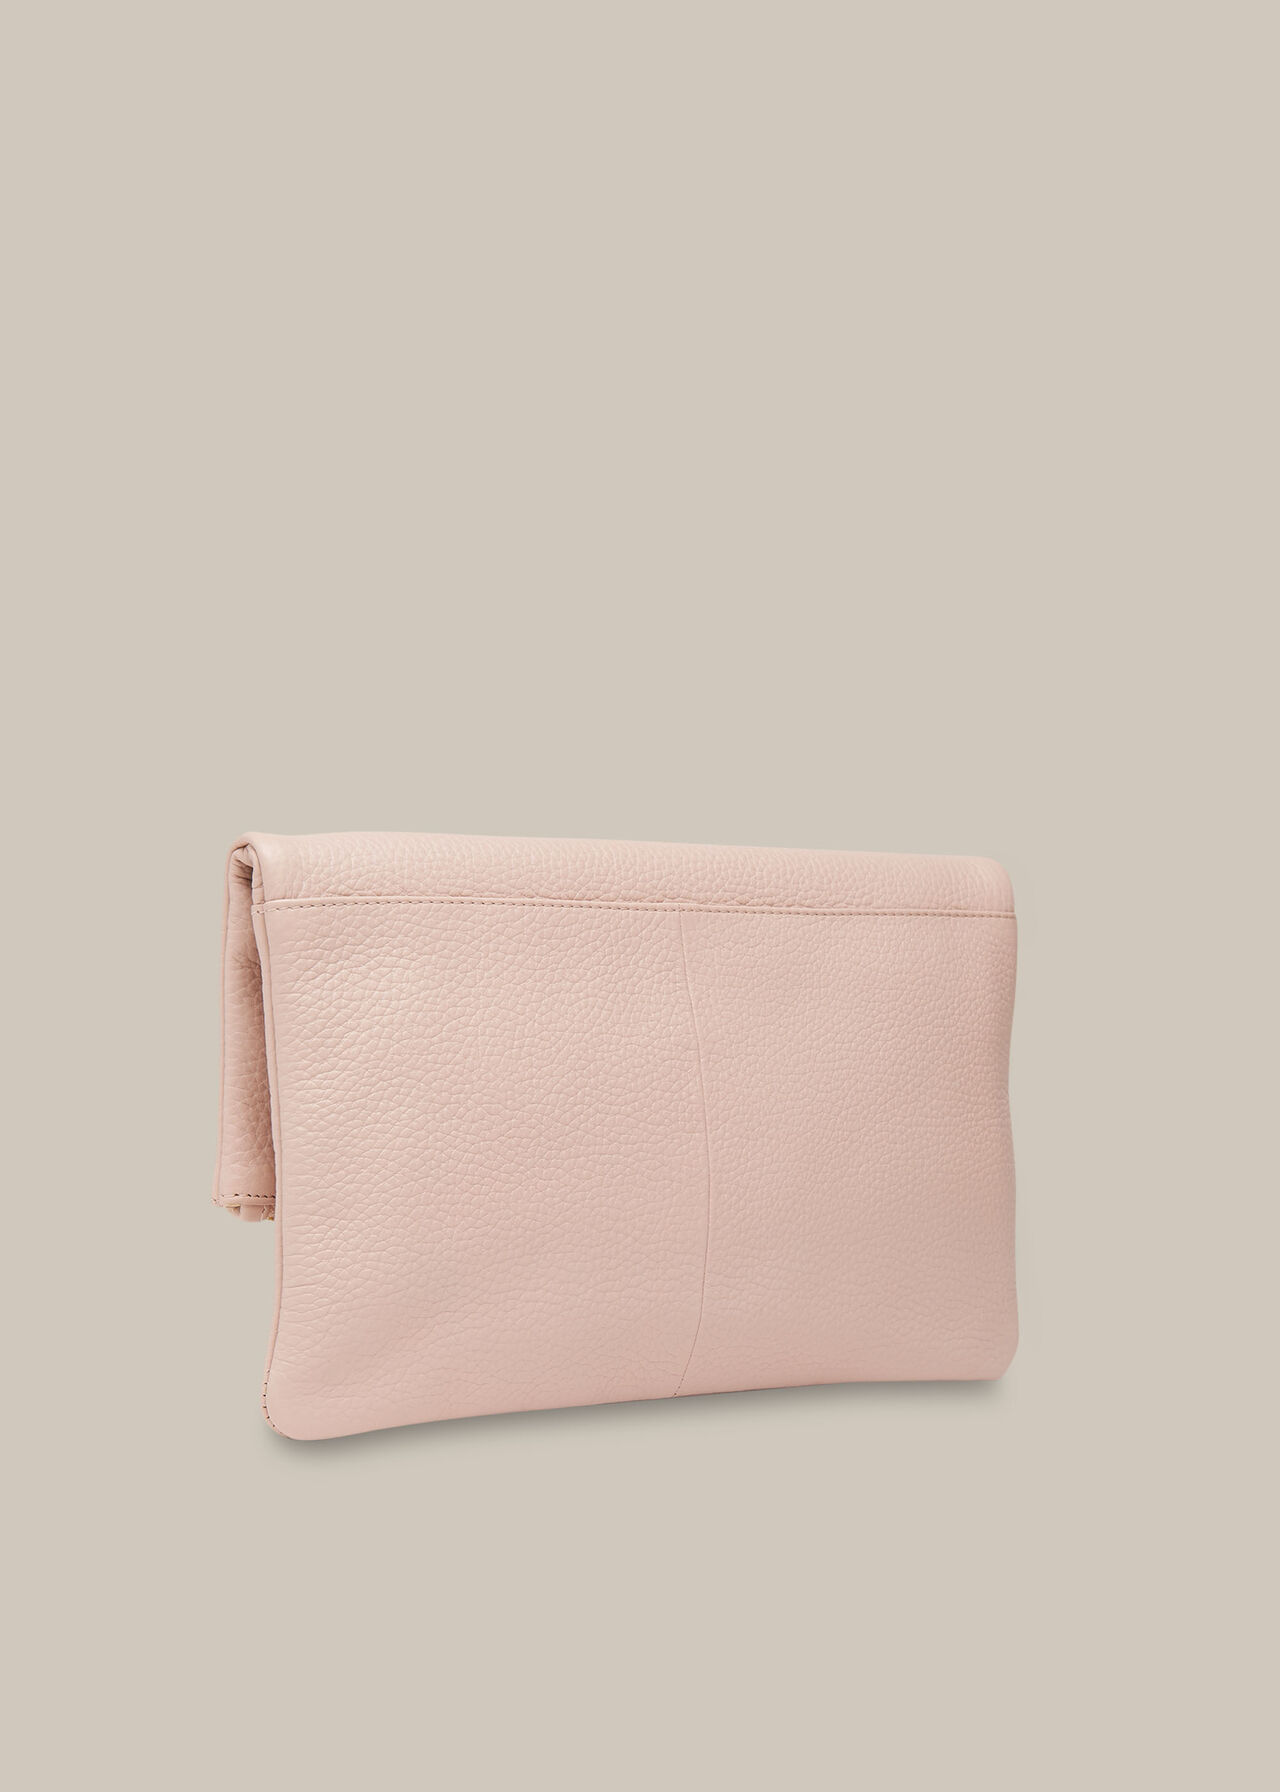 Chapel Zip Foldover Clutch